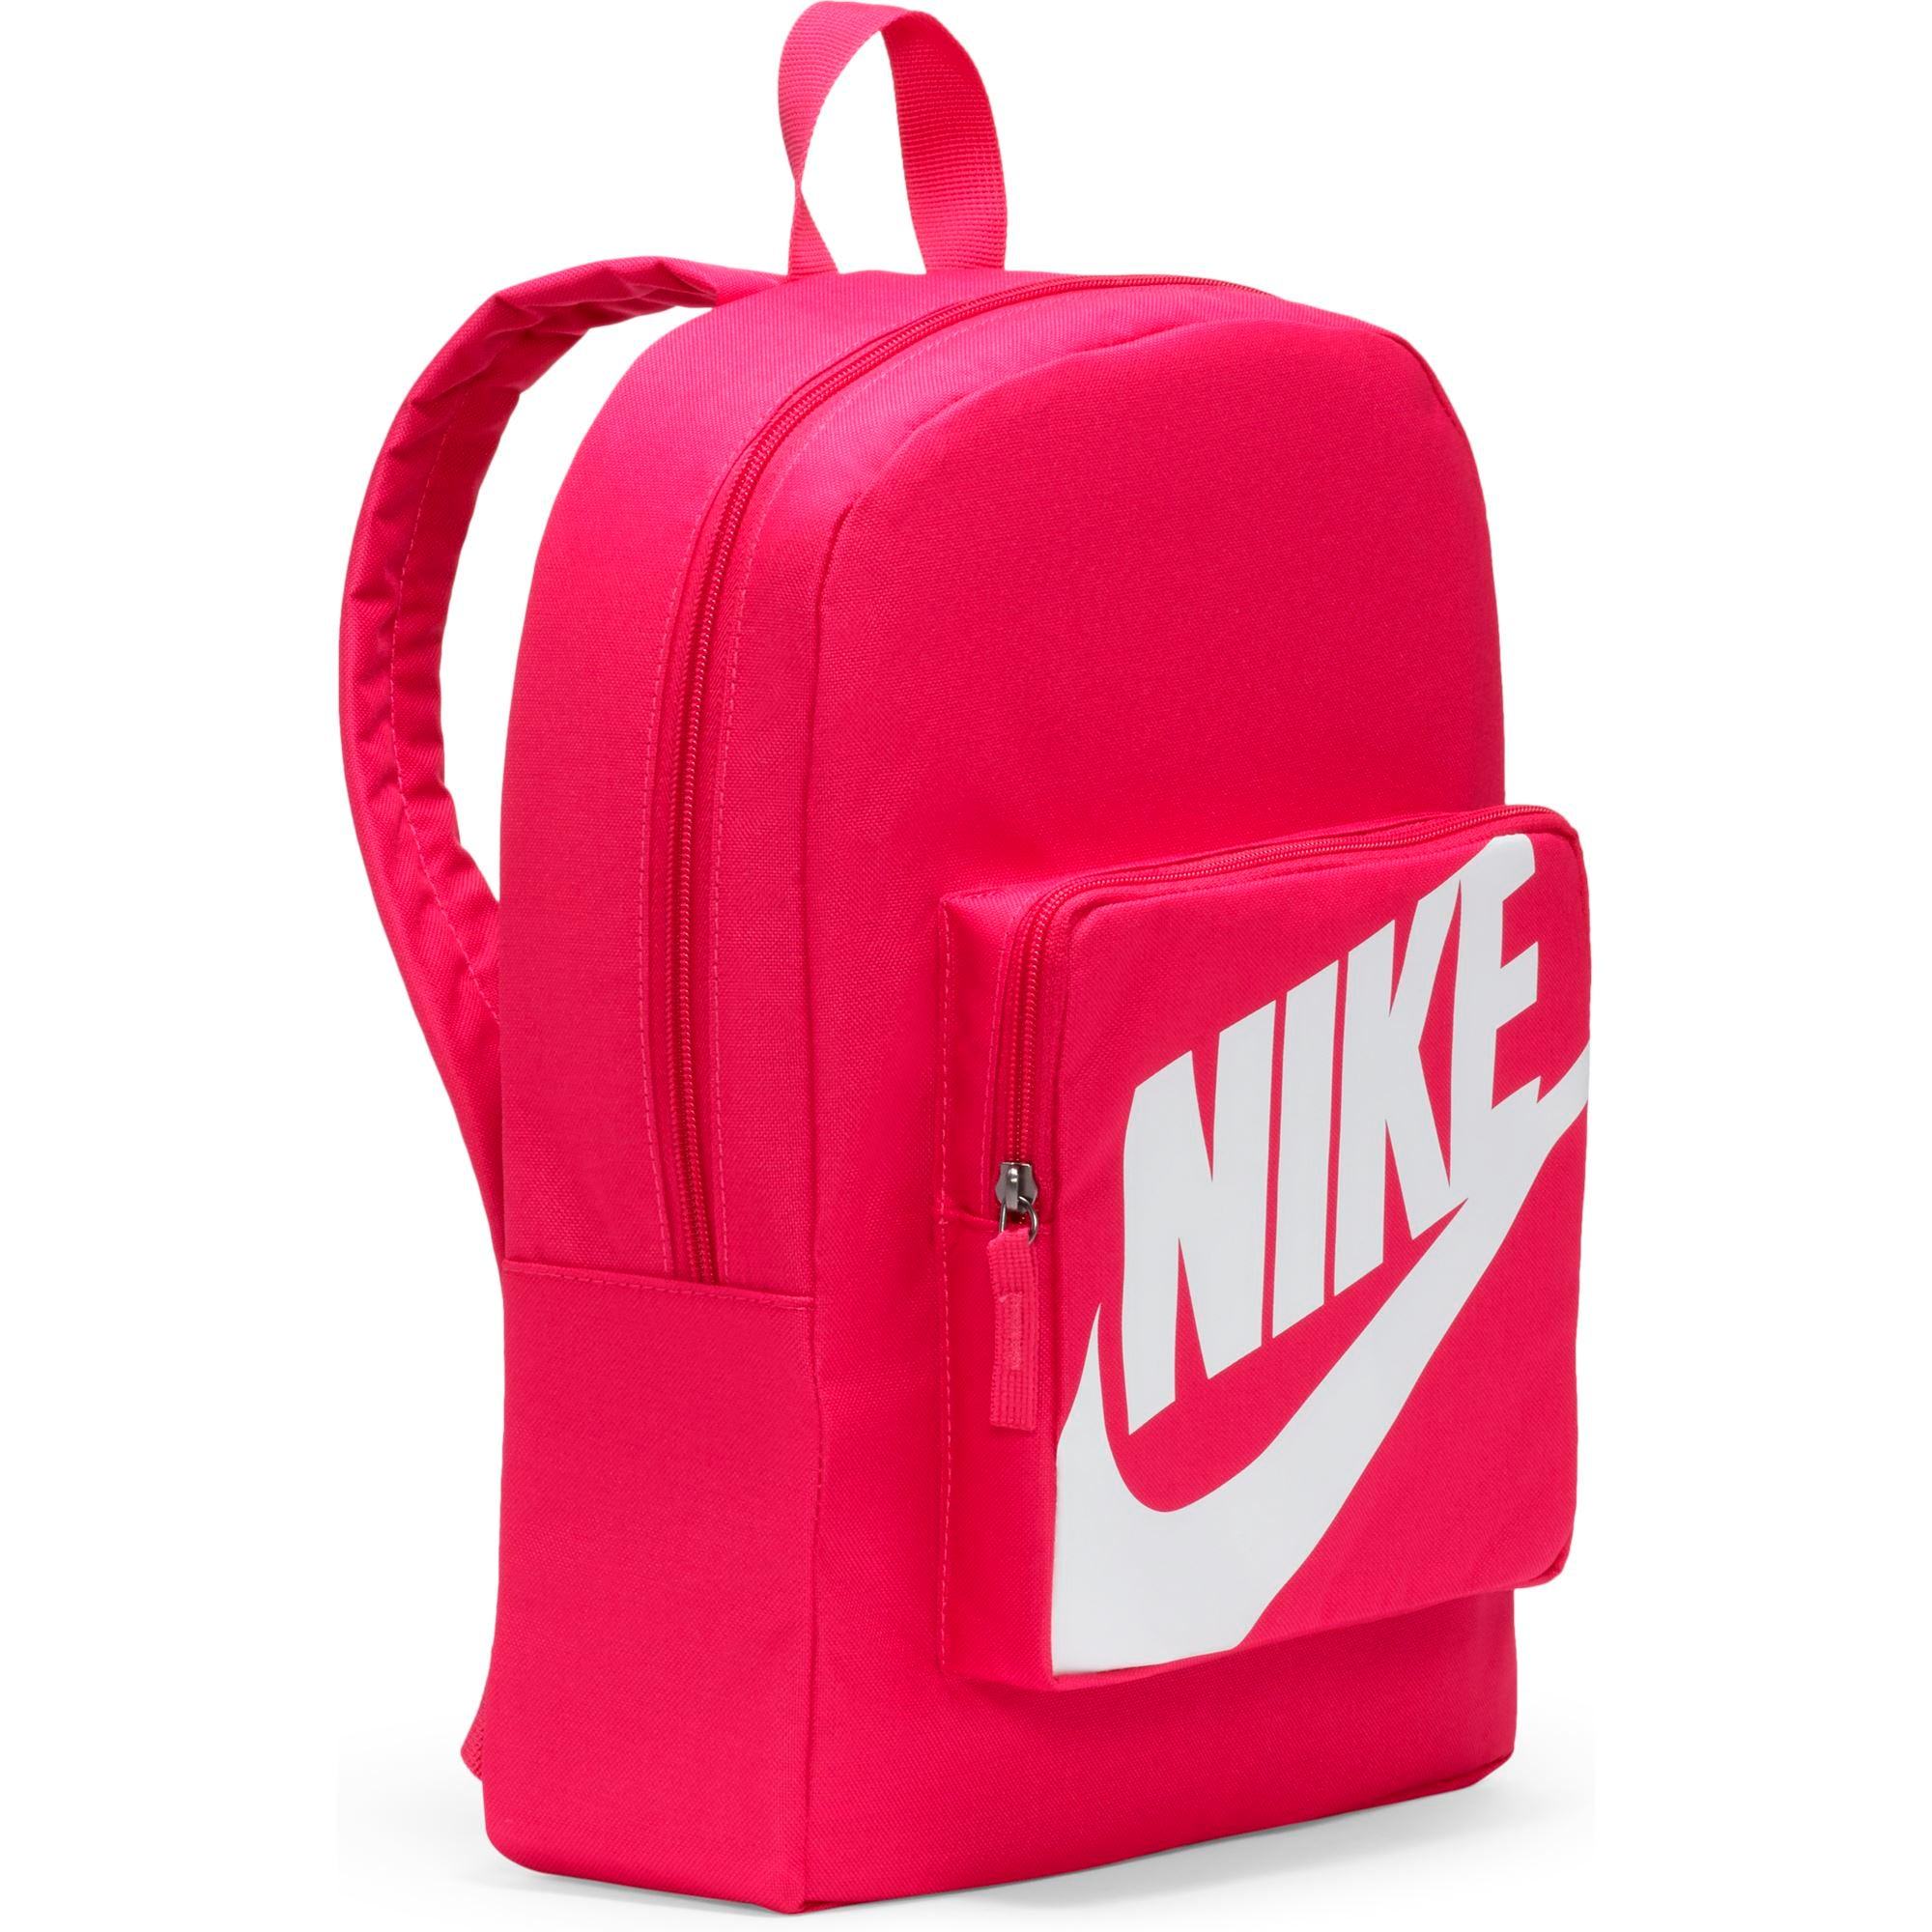 Nike Kids Classic Backpack - Fireberry/White SP-Accessories-Bags Nike